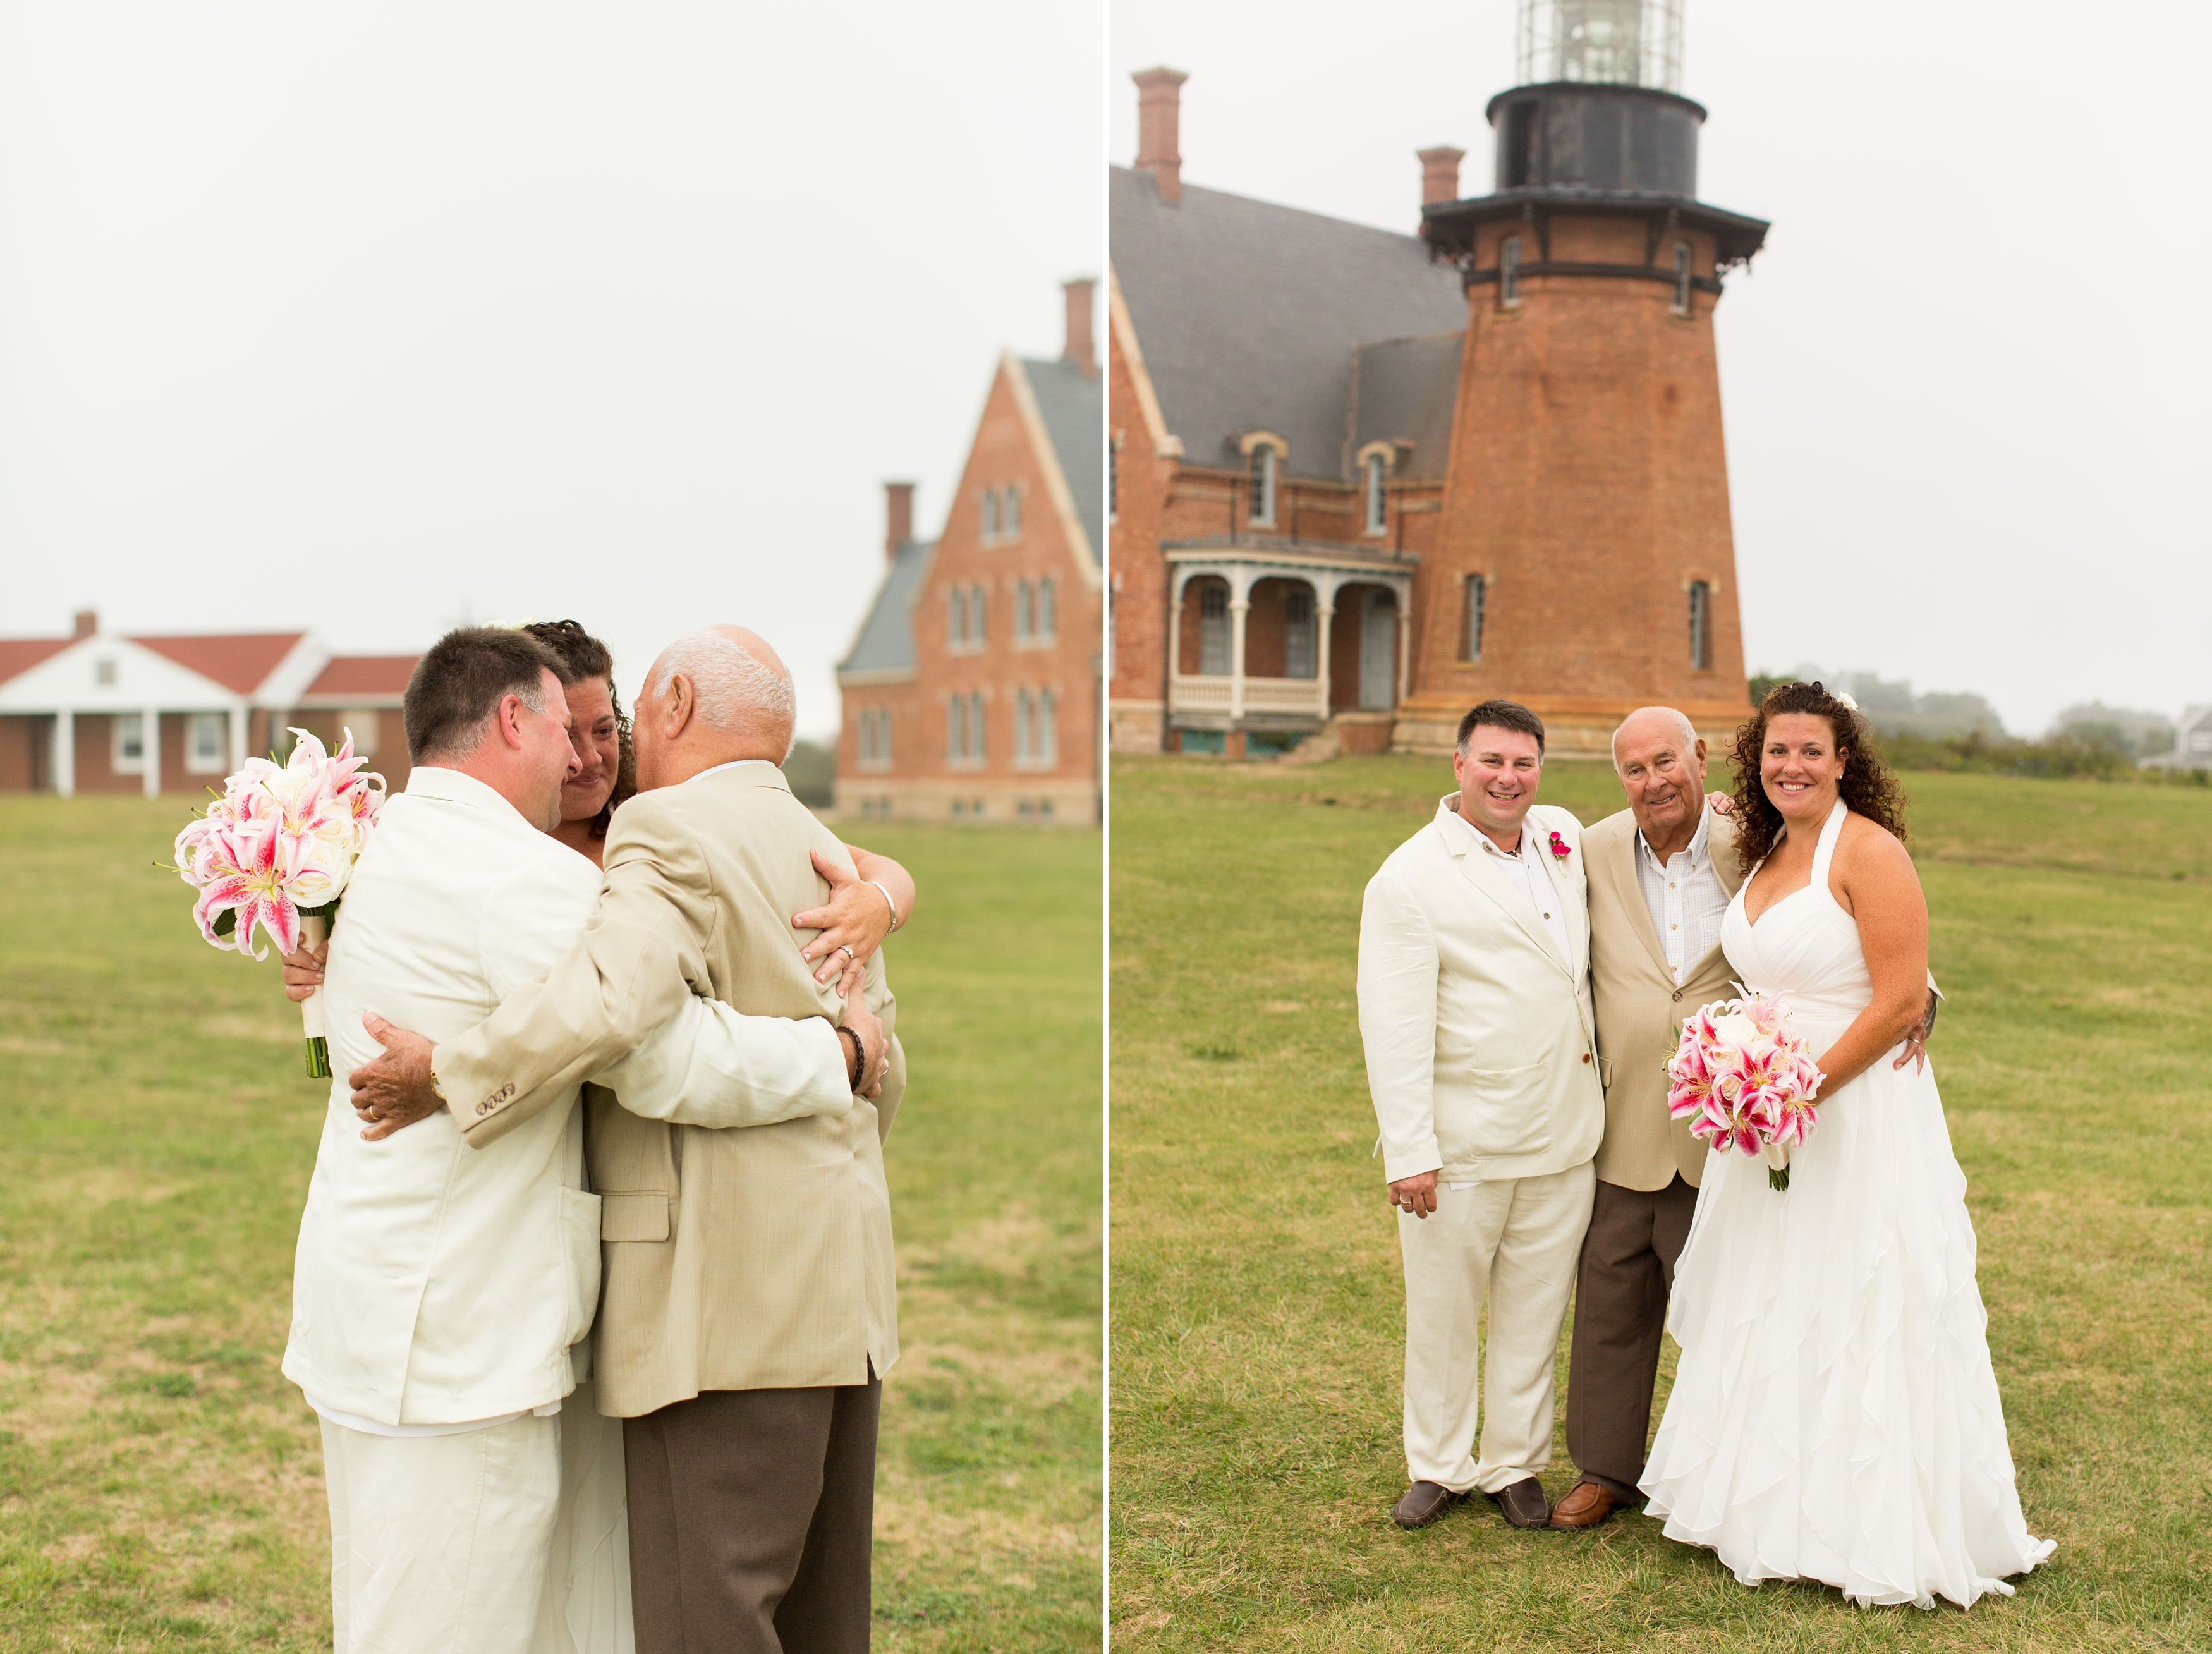 allegra_anderson_photography_block_island_rhode_island_wedding_photographer_spring_house_odell_2016194